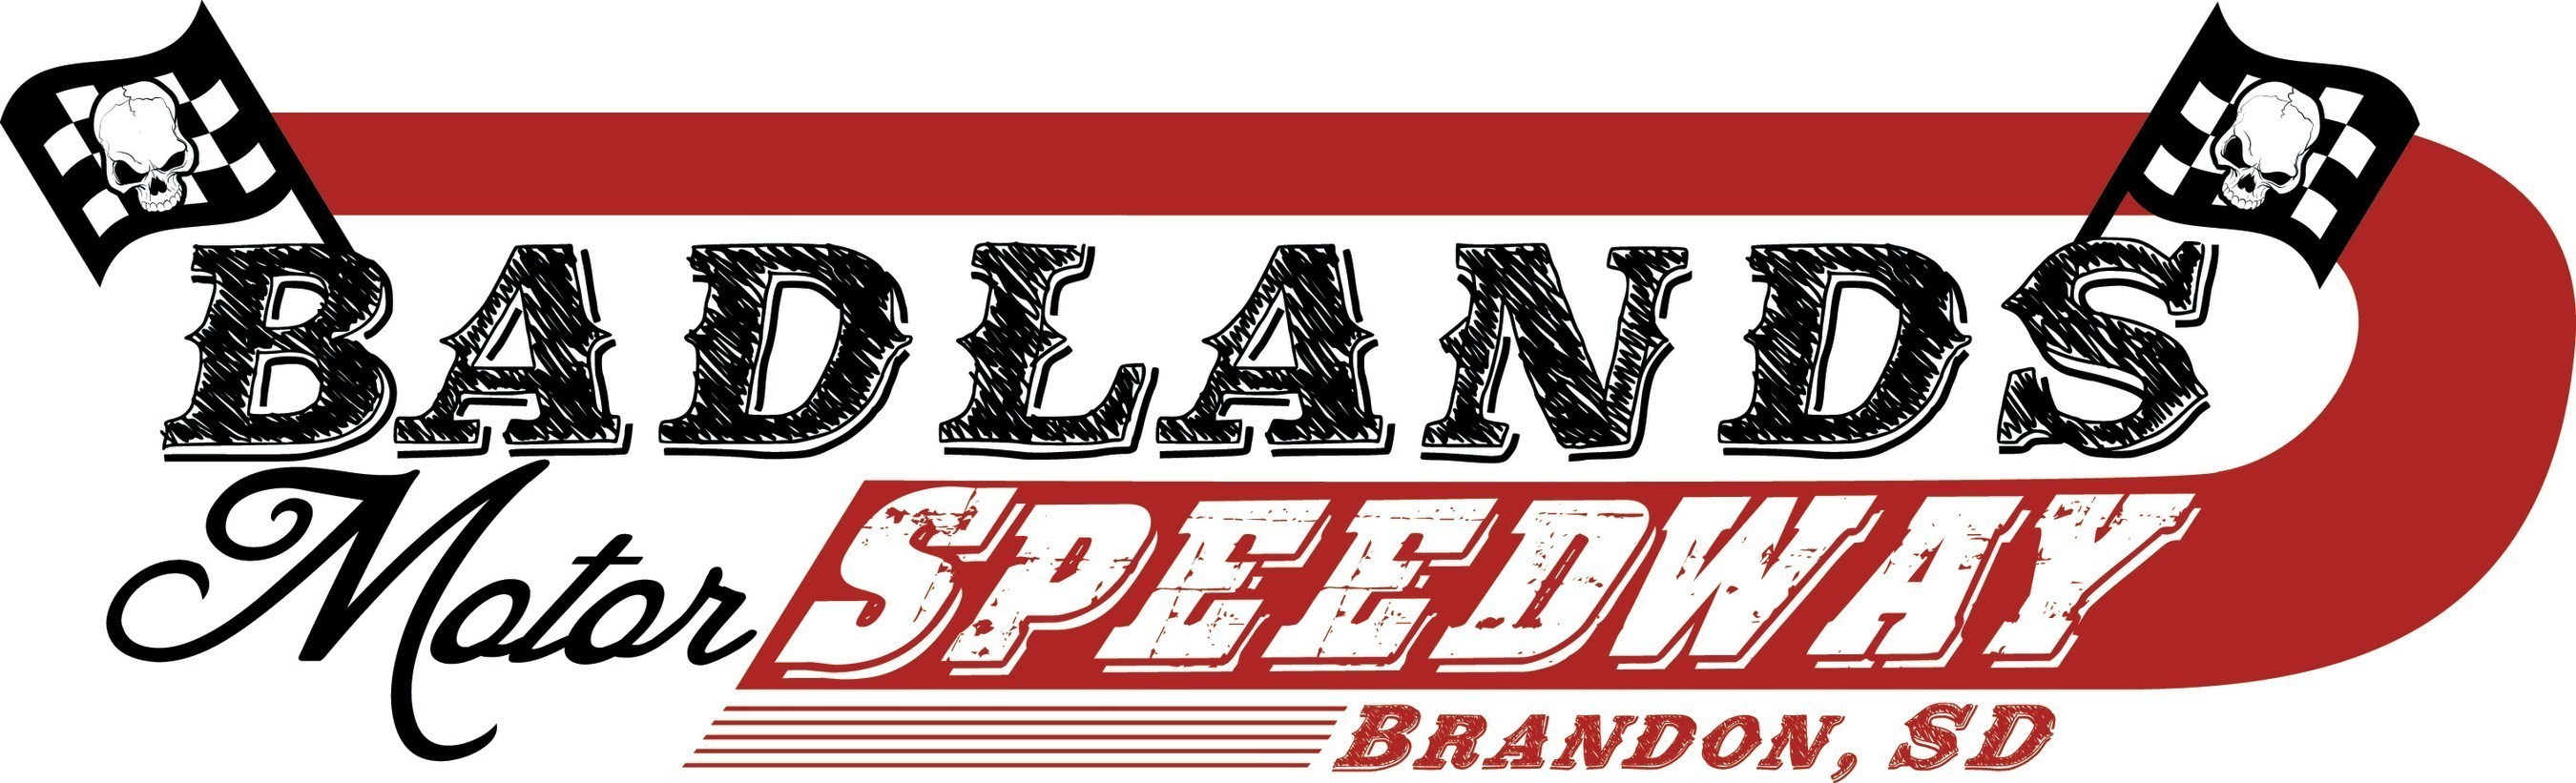 Badlands Entertainment Group has struck a deal to purchase the famed Huset's Speedway in Brandon, South Dakota. Badlands CEO Chuck Brennan says millions in improvements are being planned for the iconic family racing facility, which will officially become Badlands Motor Speedway for the 2016 season.